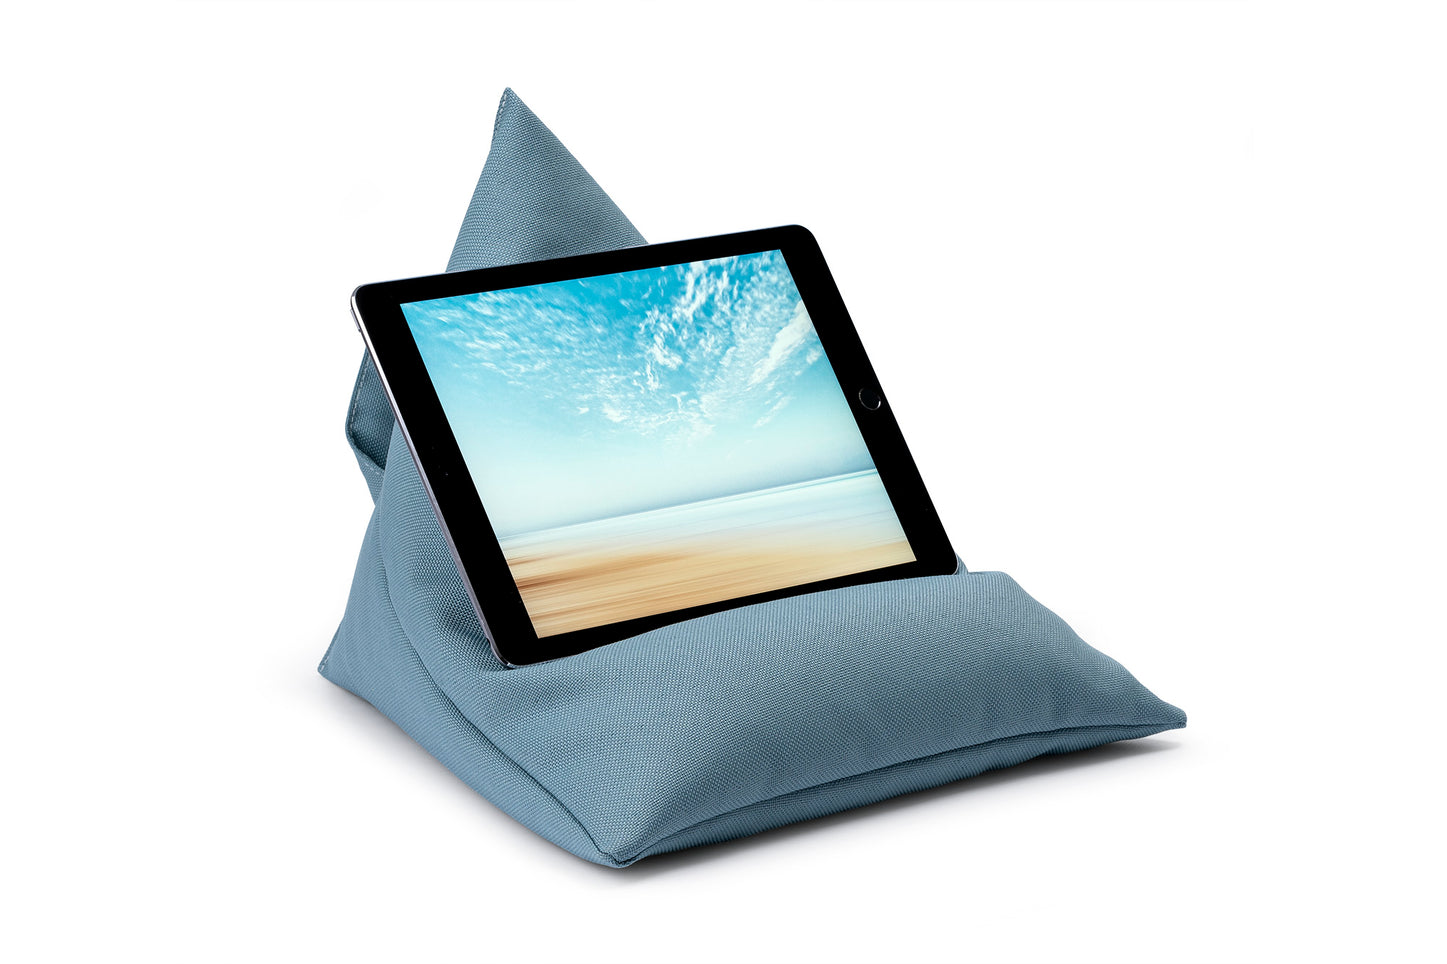 iPad, Tablet & eReader Bean Bag Stand in Plain Ocean armadillosun